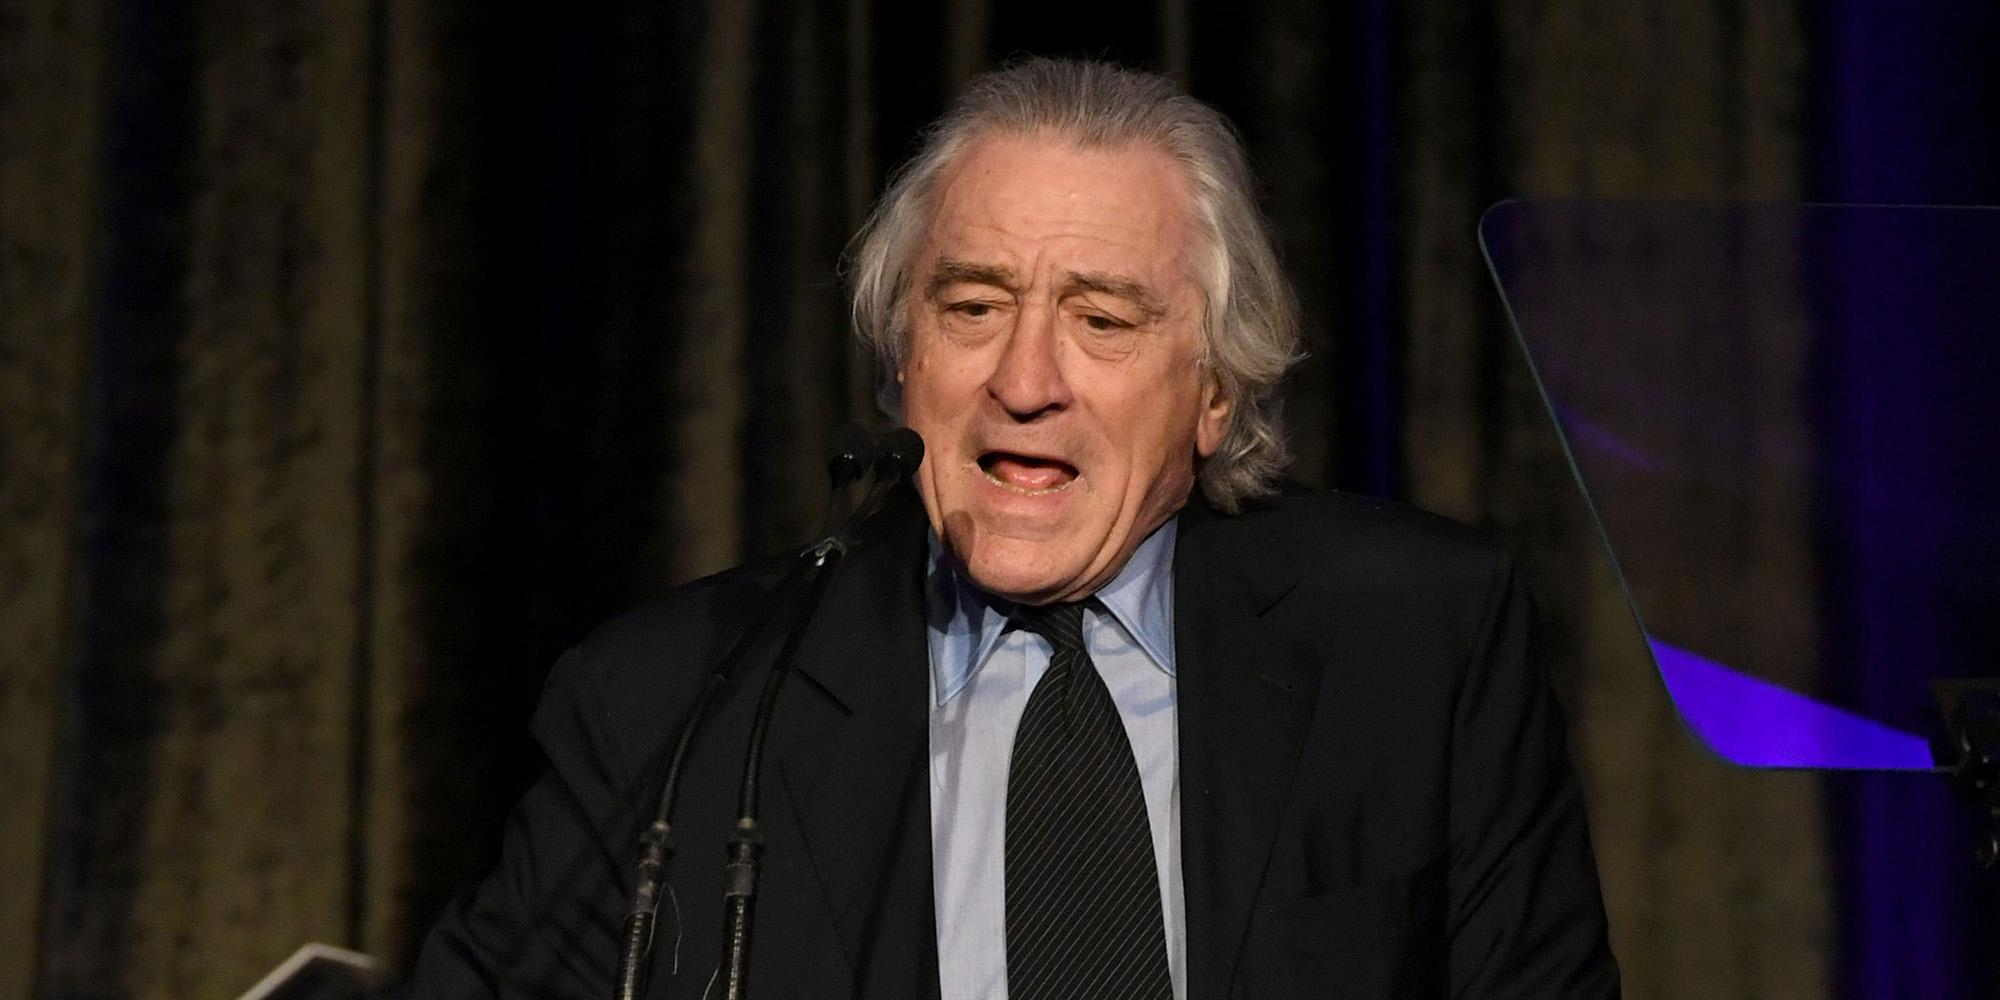 Robert De Niro's company sues former employee $6m for embezzlement and Netflix bingeing